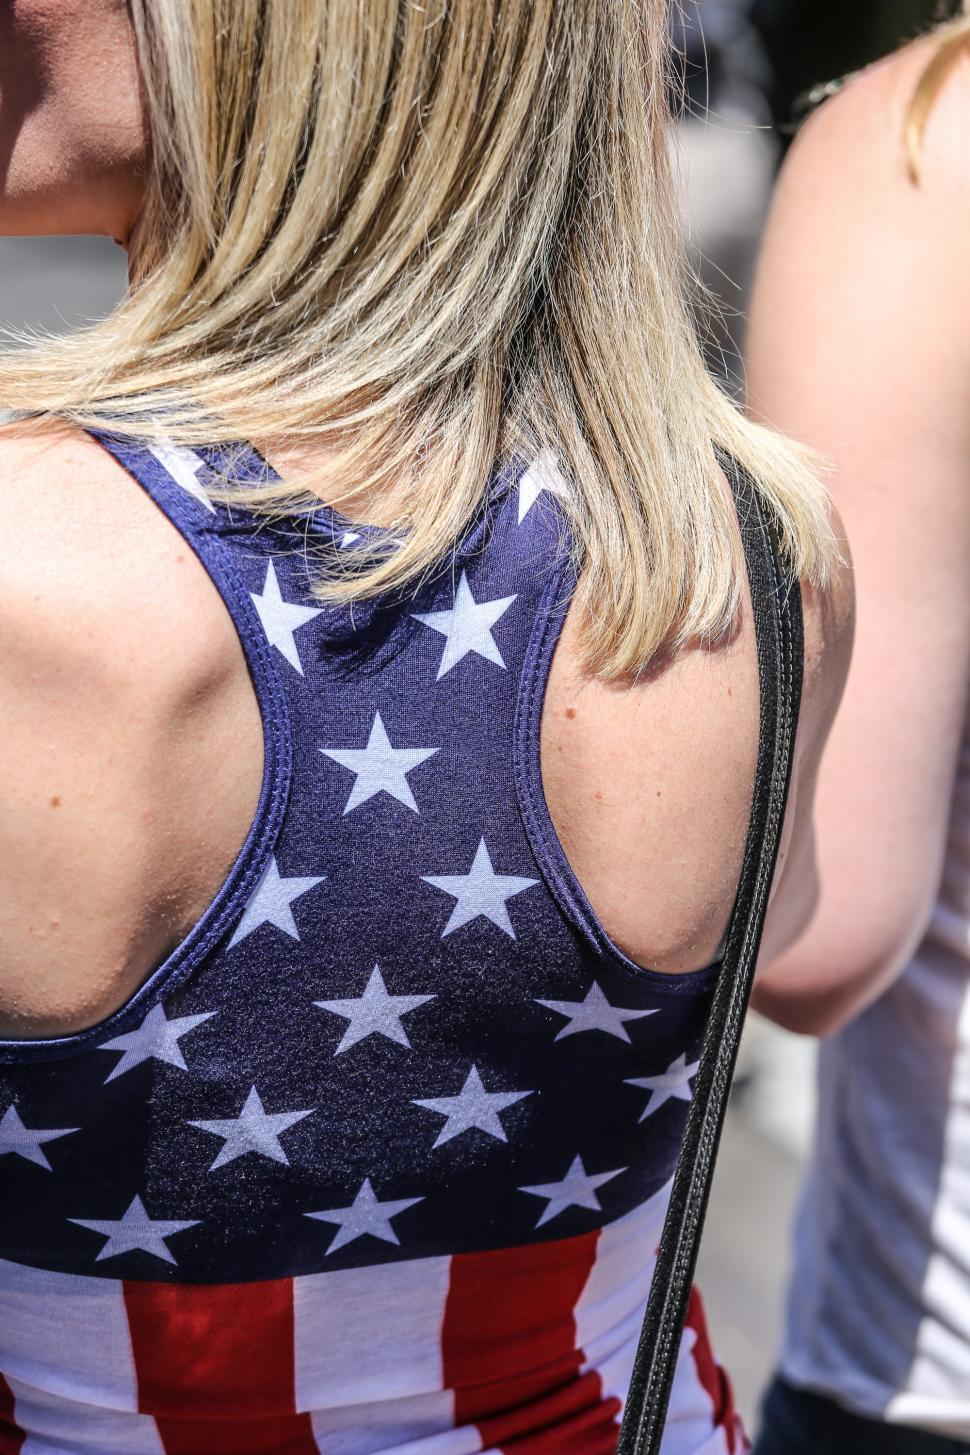 Download Free Stock Photo of Stars and stripes halter top